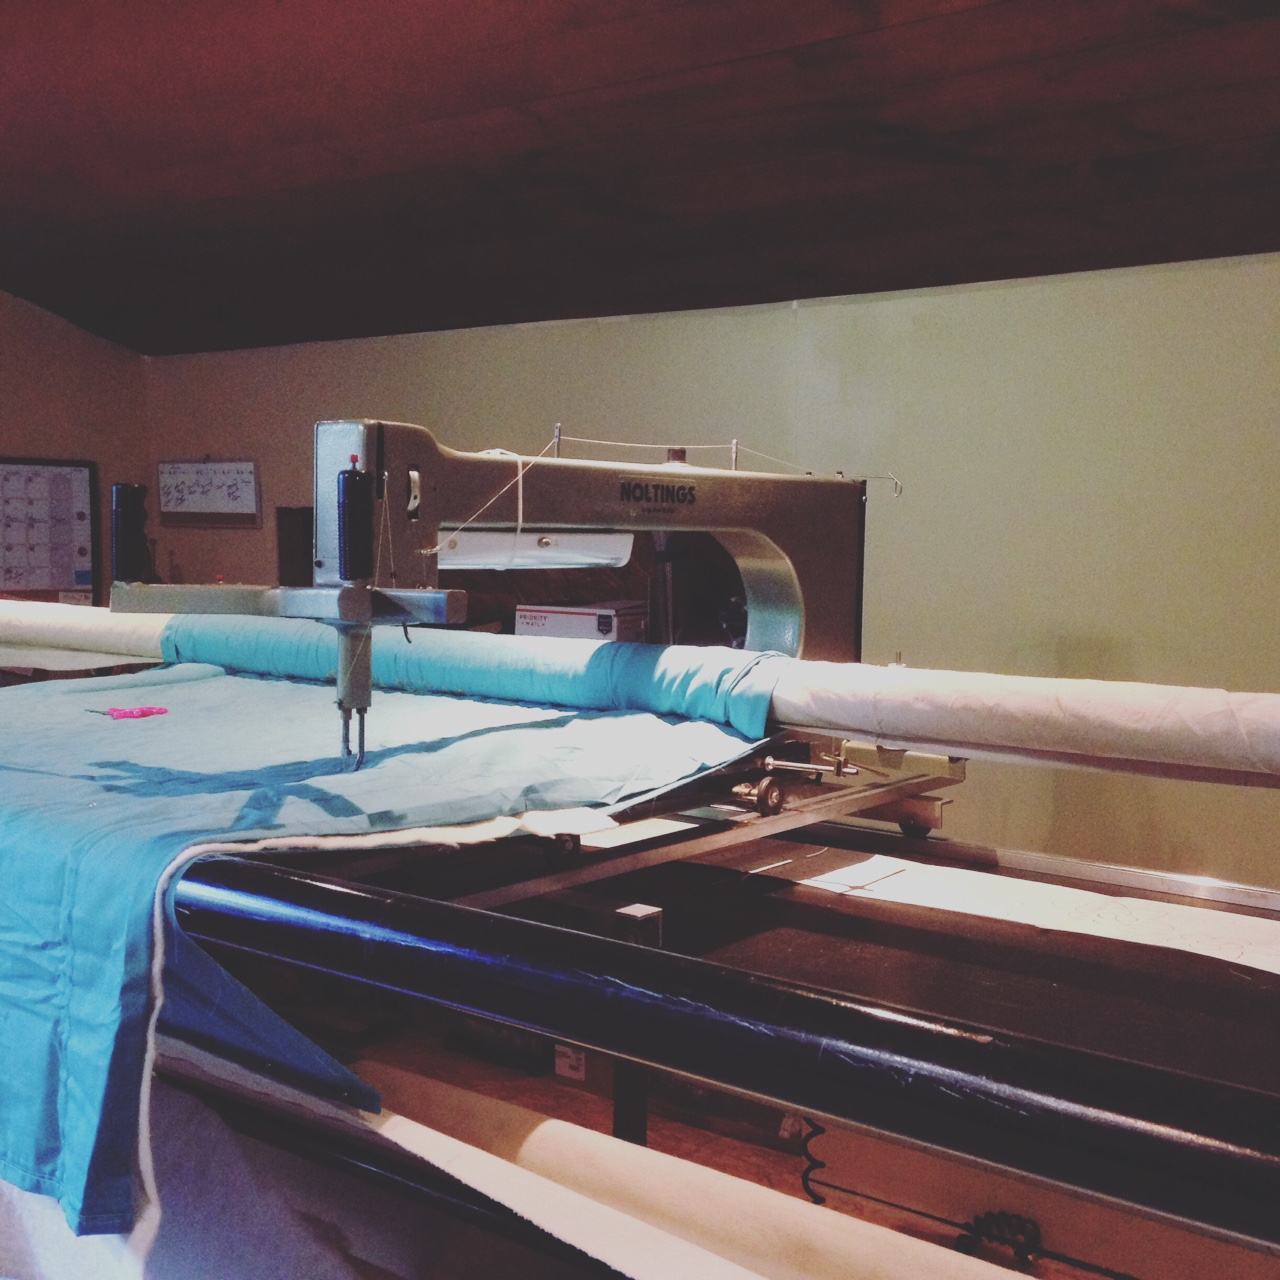 "Nolting 30"" Longarm"